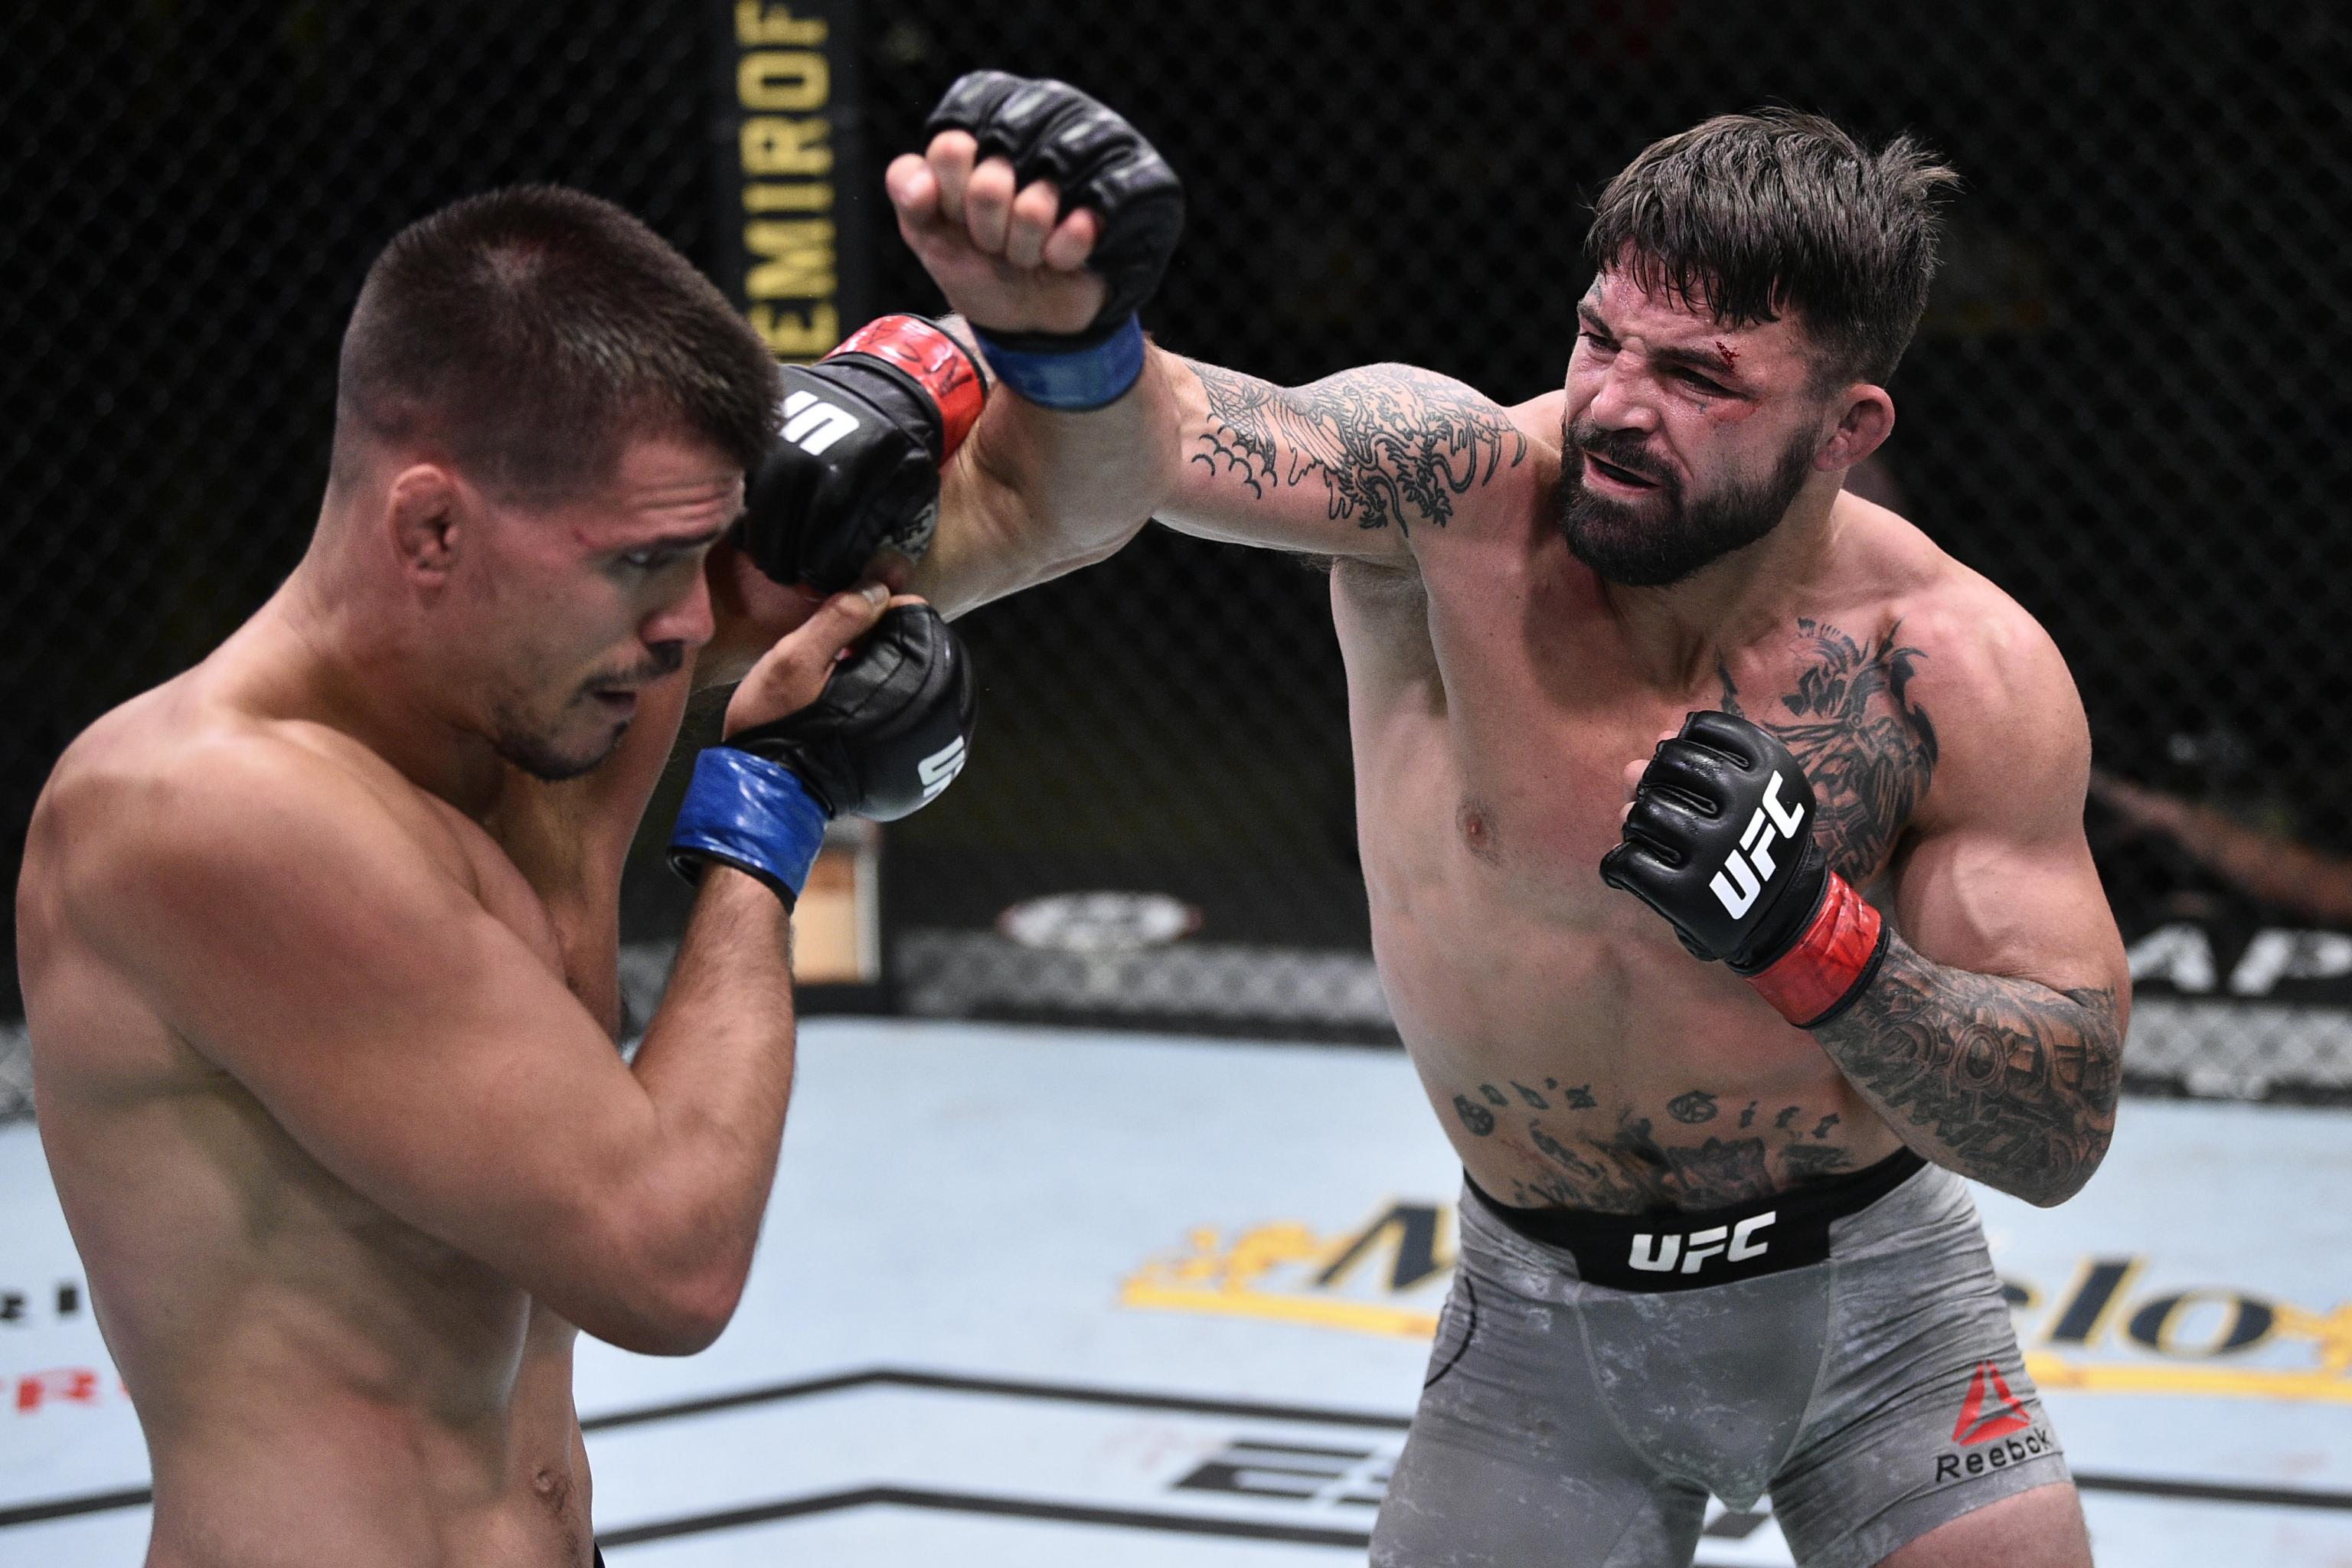 UFC News: Mike Perry Calls out Nate Diaz, Geoff Neal Eyes Tyron ...